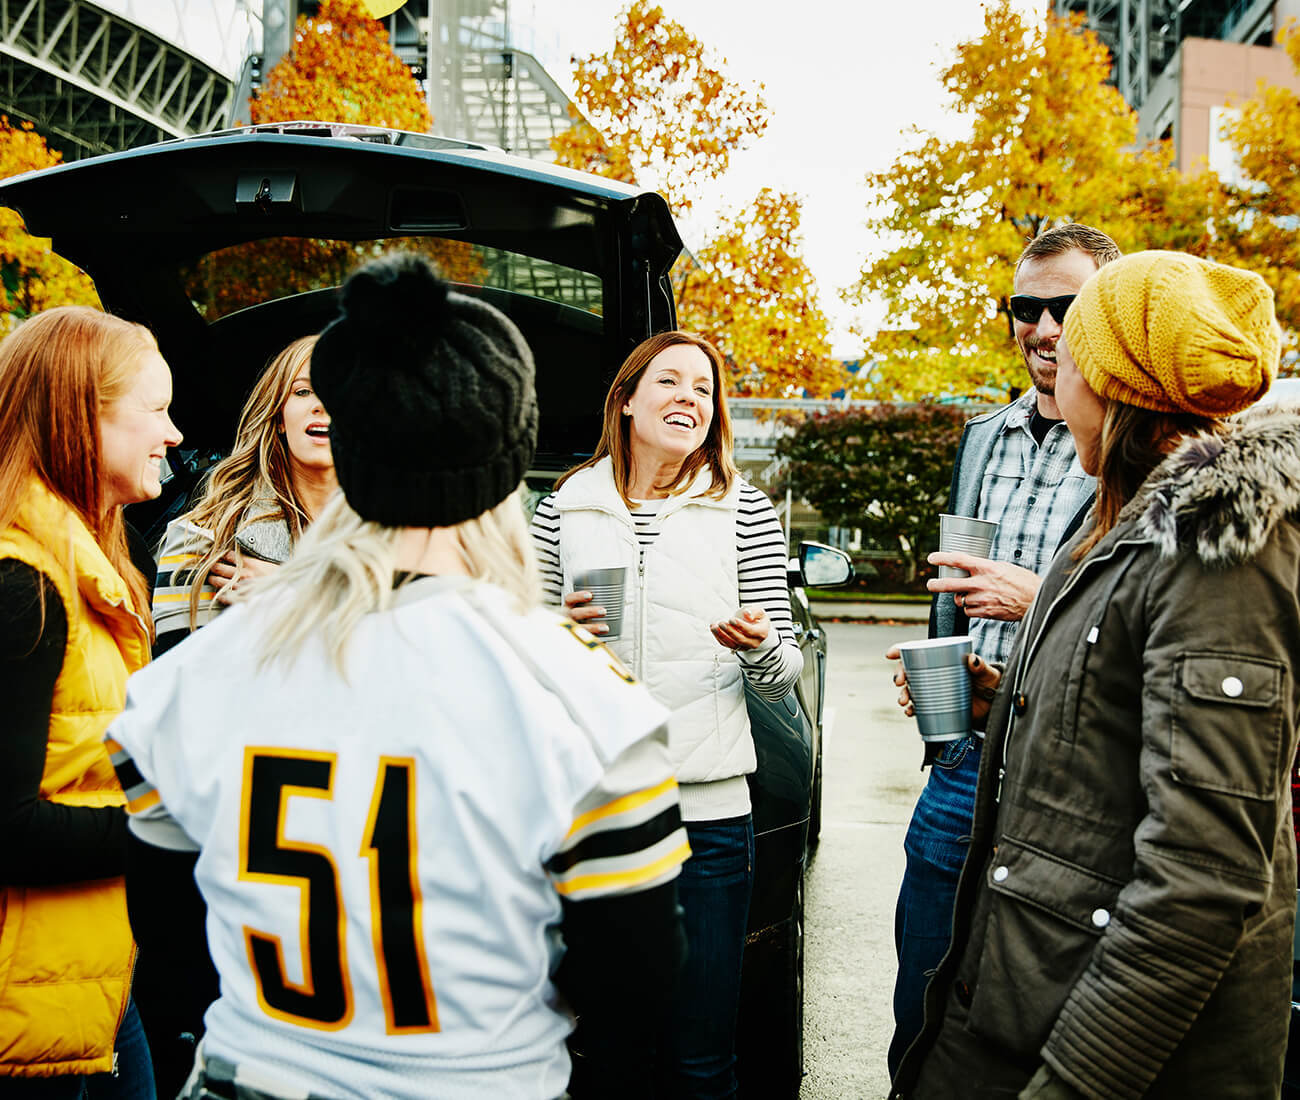 Image for Tailgate party planning ideas